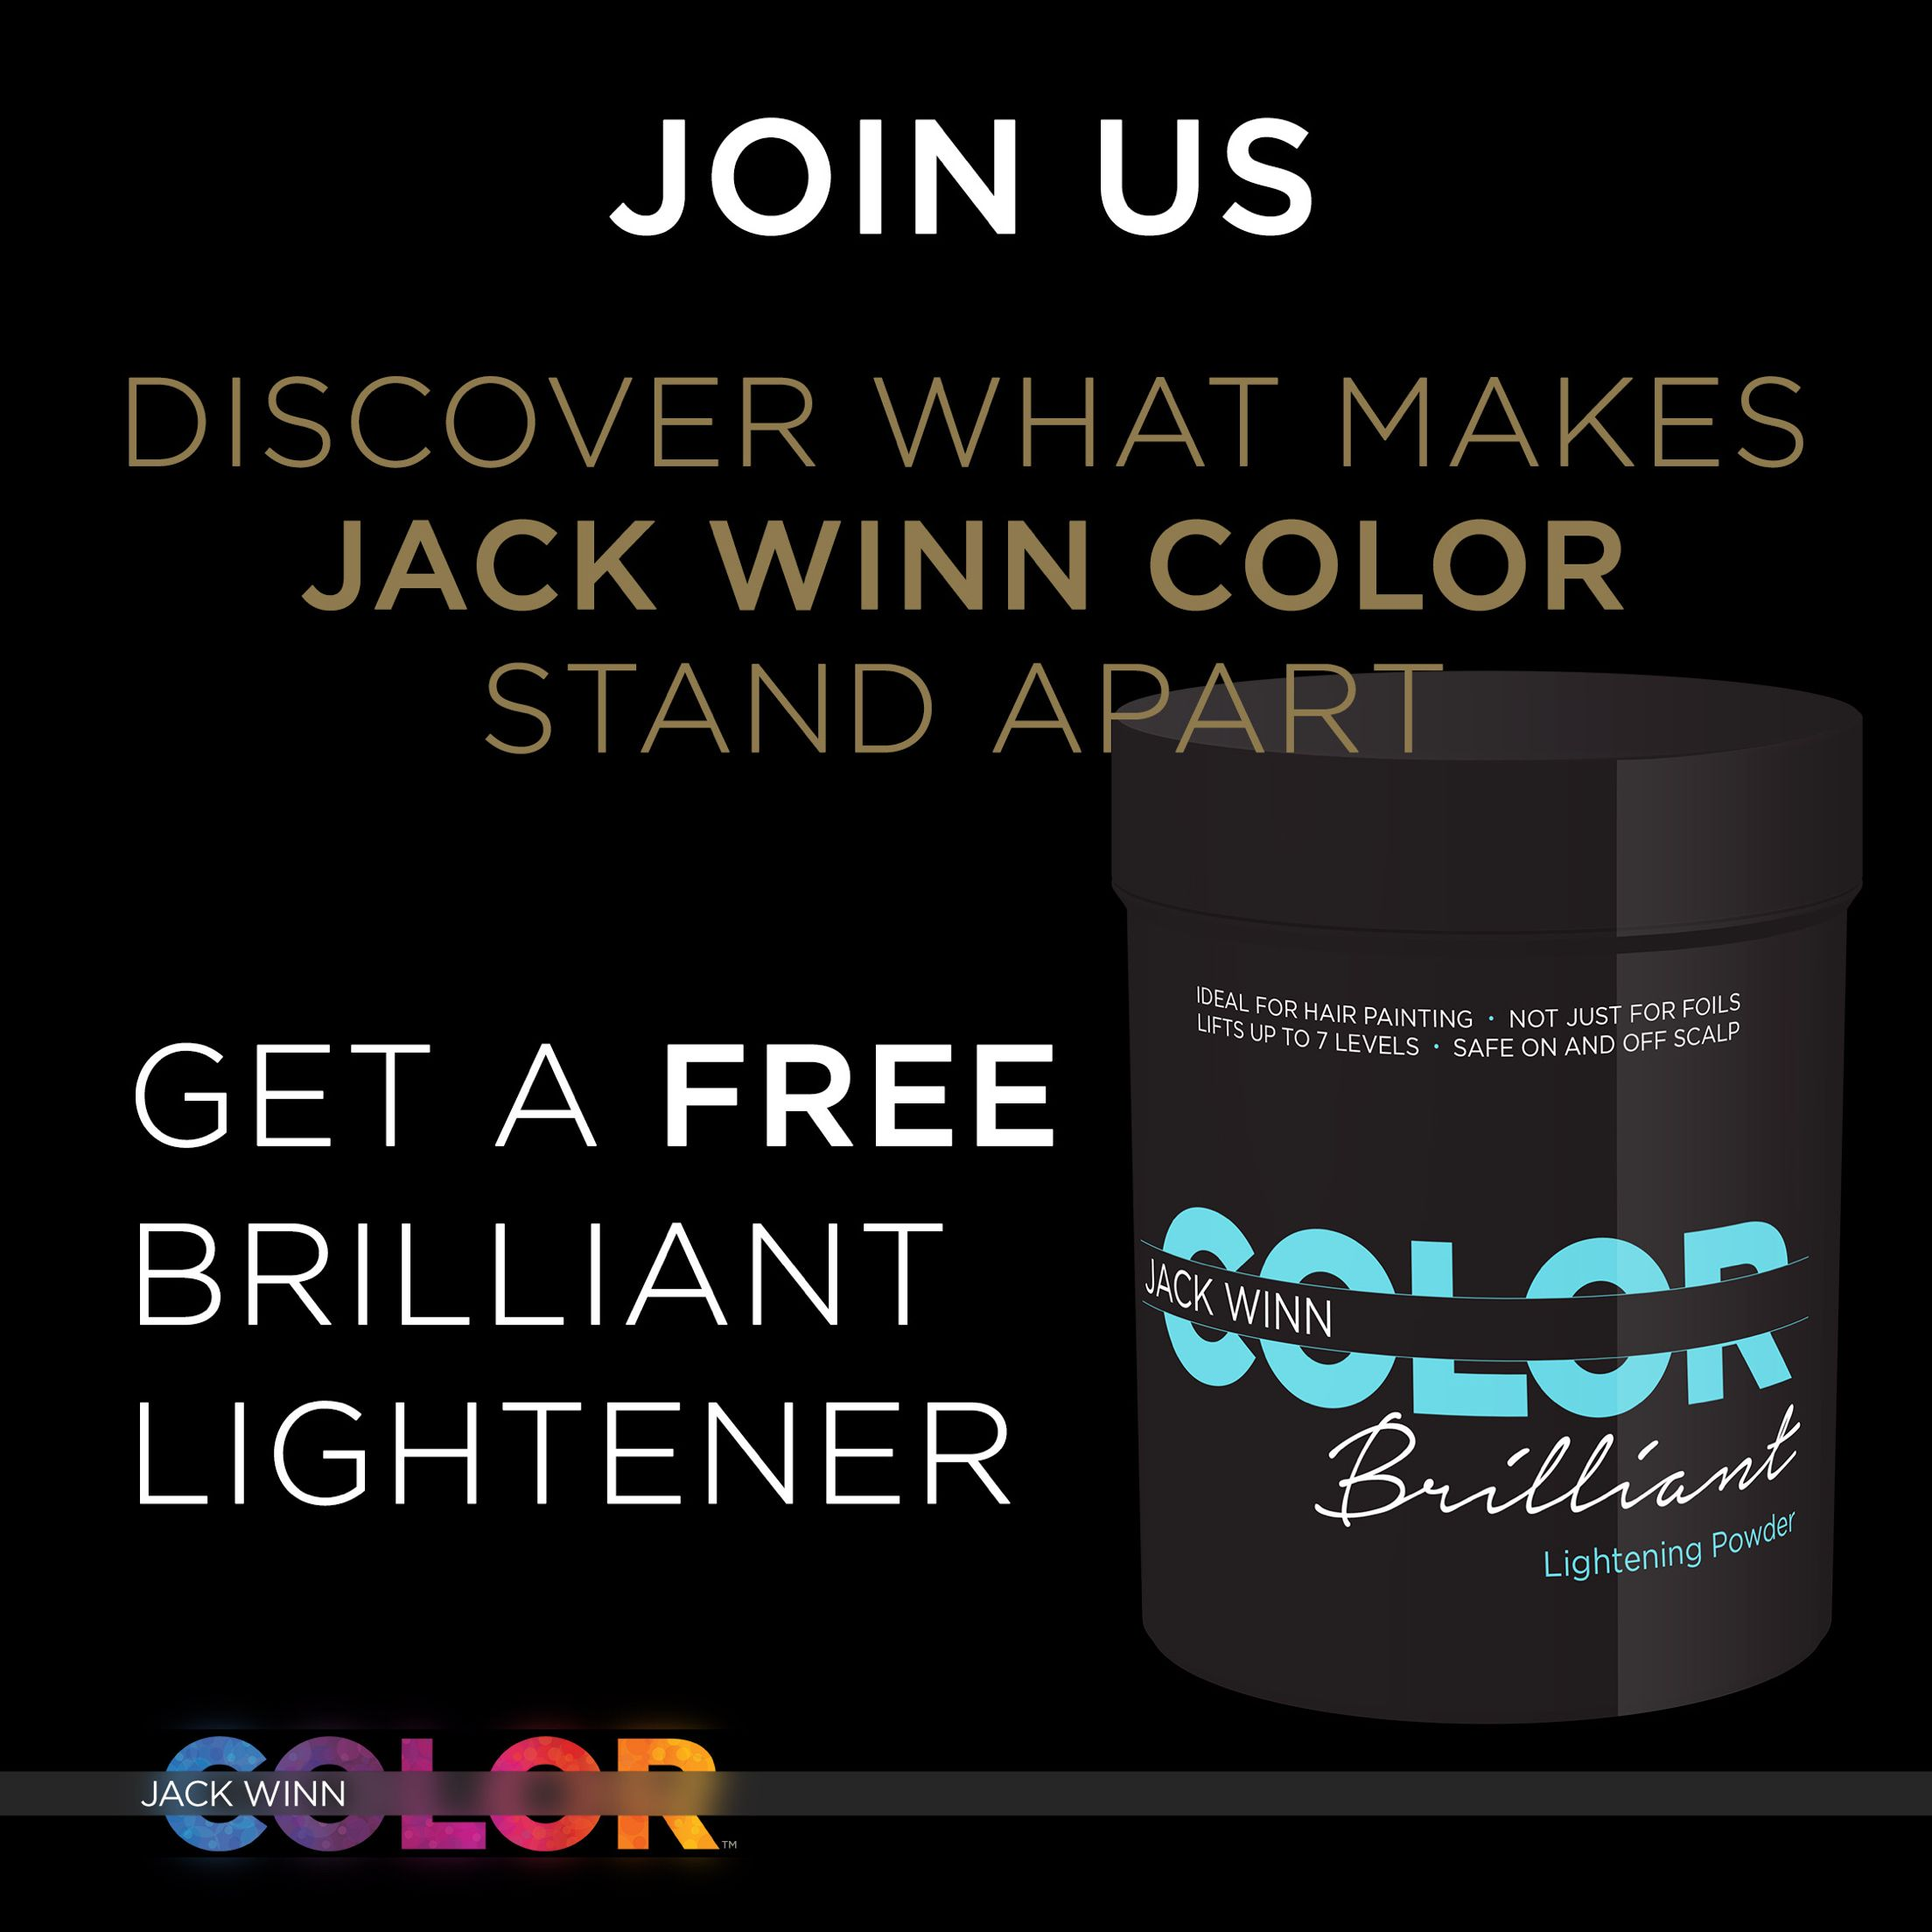 jack winn color 13 best Jack Winn Color images on Pinterest | Hair stylists ...